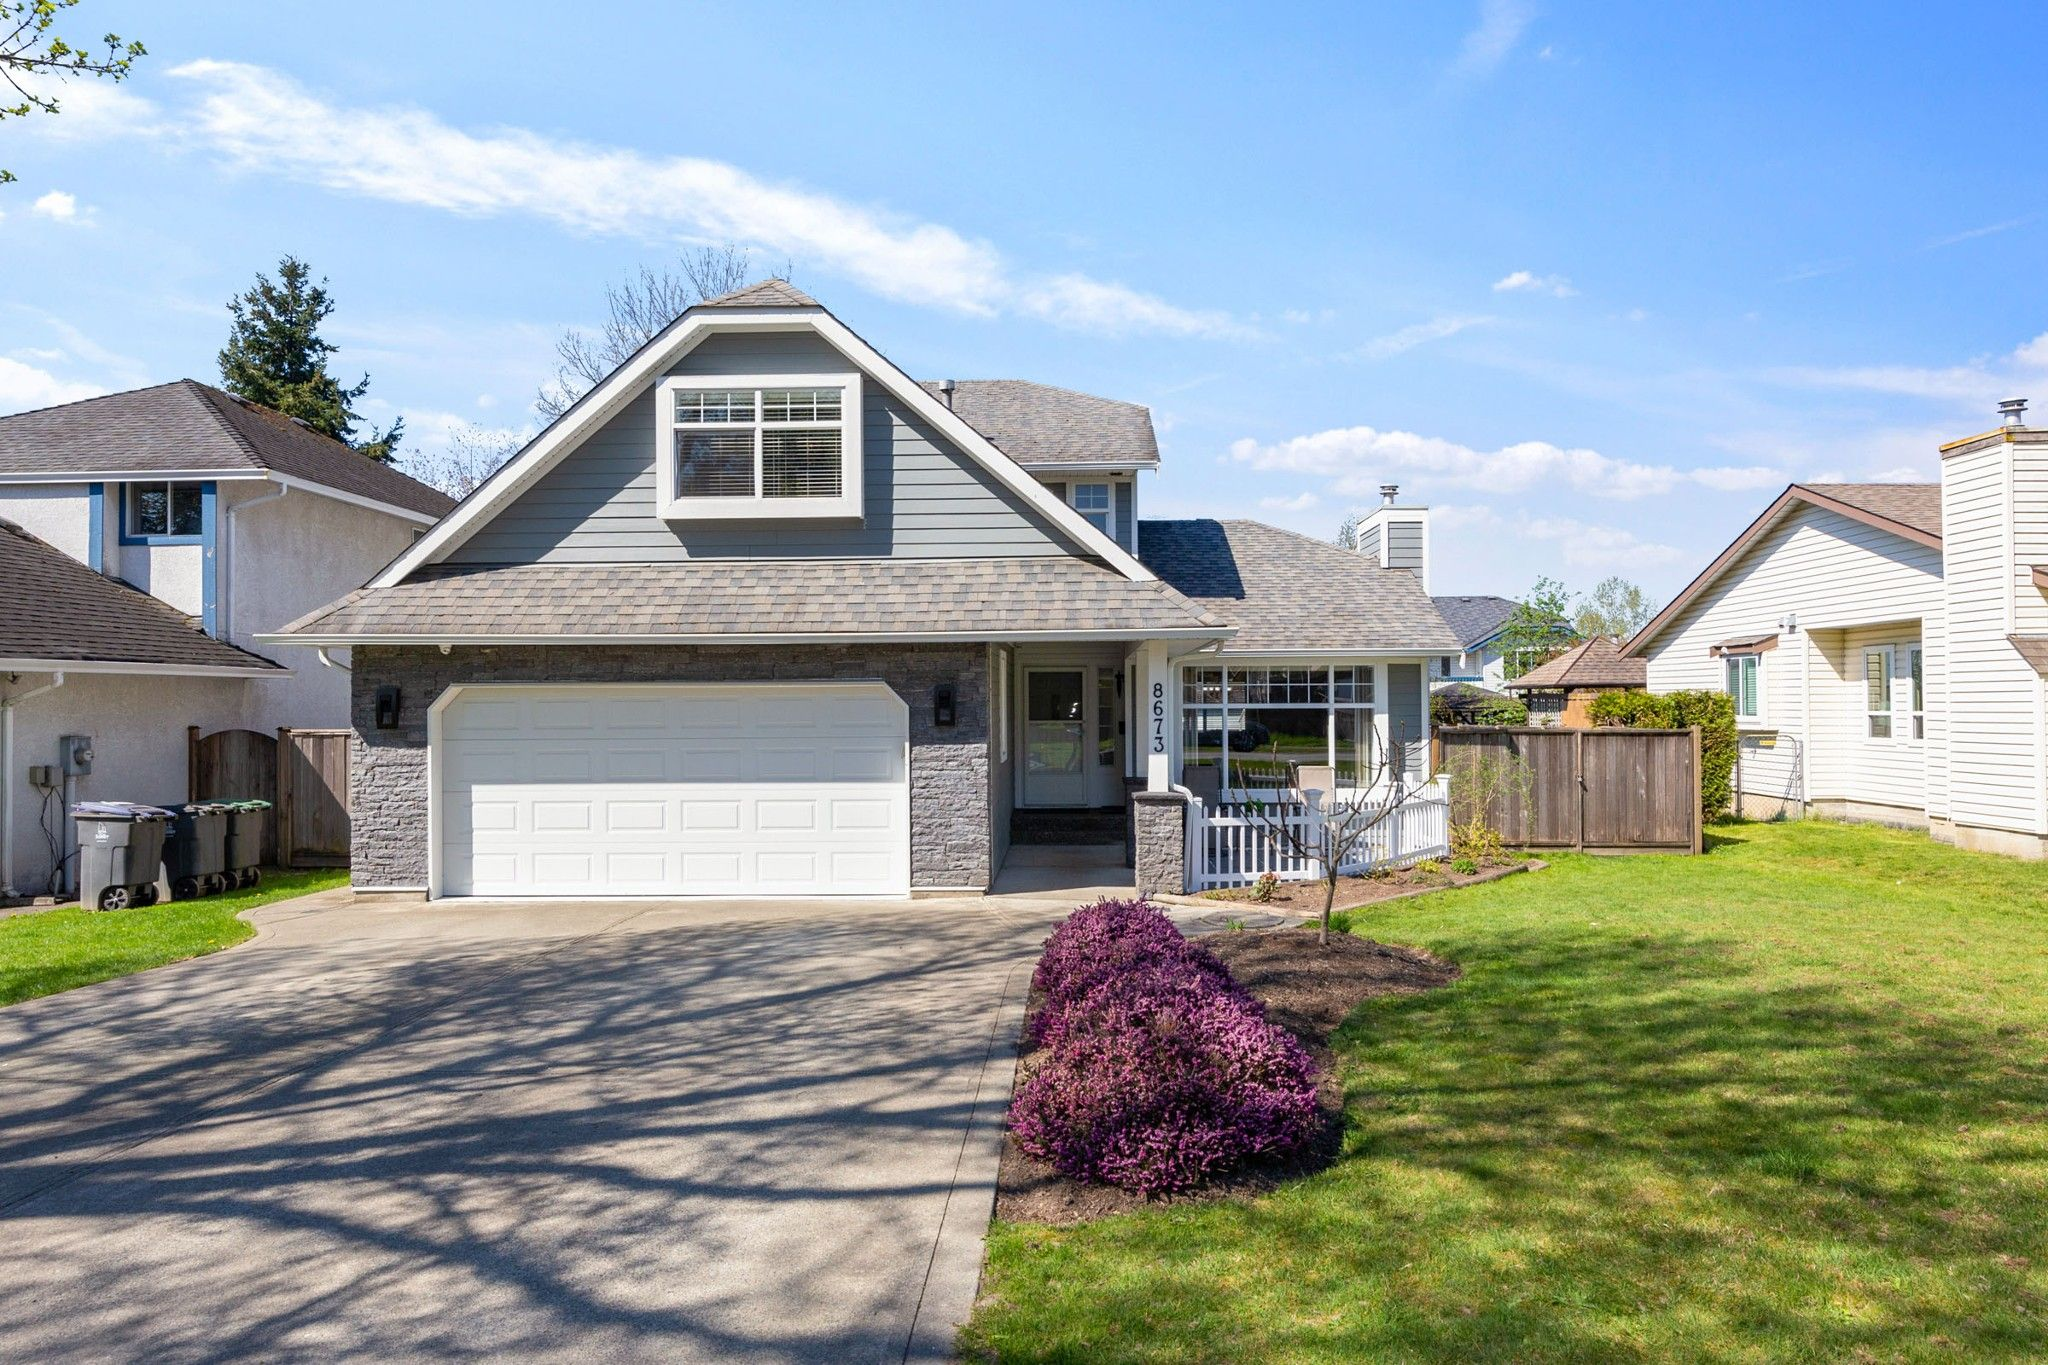 Main Photo: 8673 150 Street in Surrey: Bear Creek Green Timbers House for sale : MLS®# R2568302